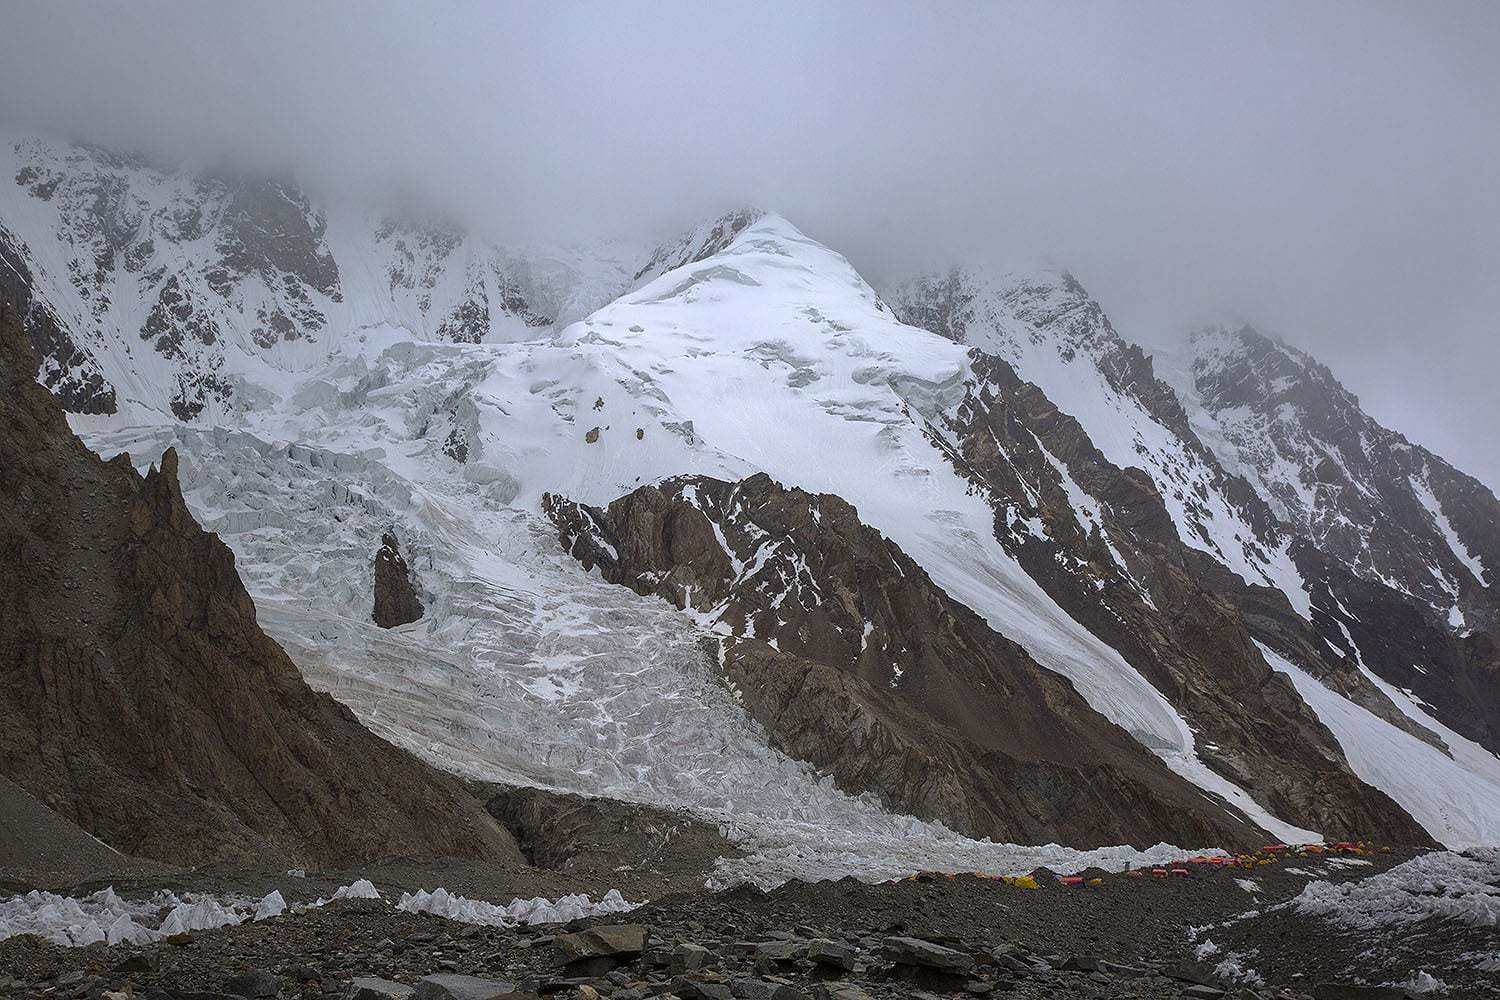 A view of the K2 base camp. — Photo courtesy Imad Brohi/File